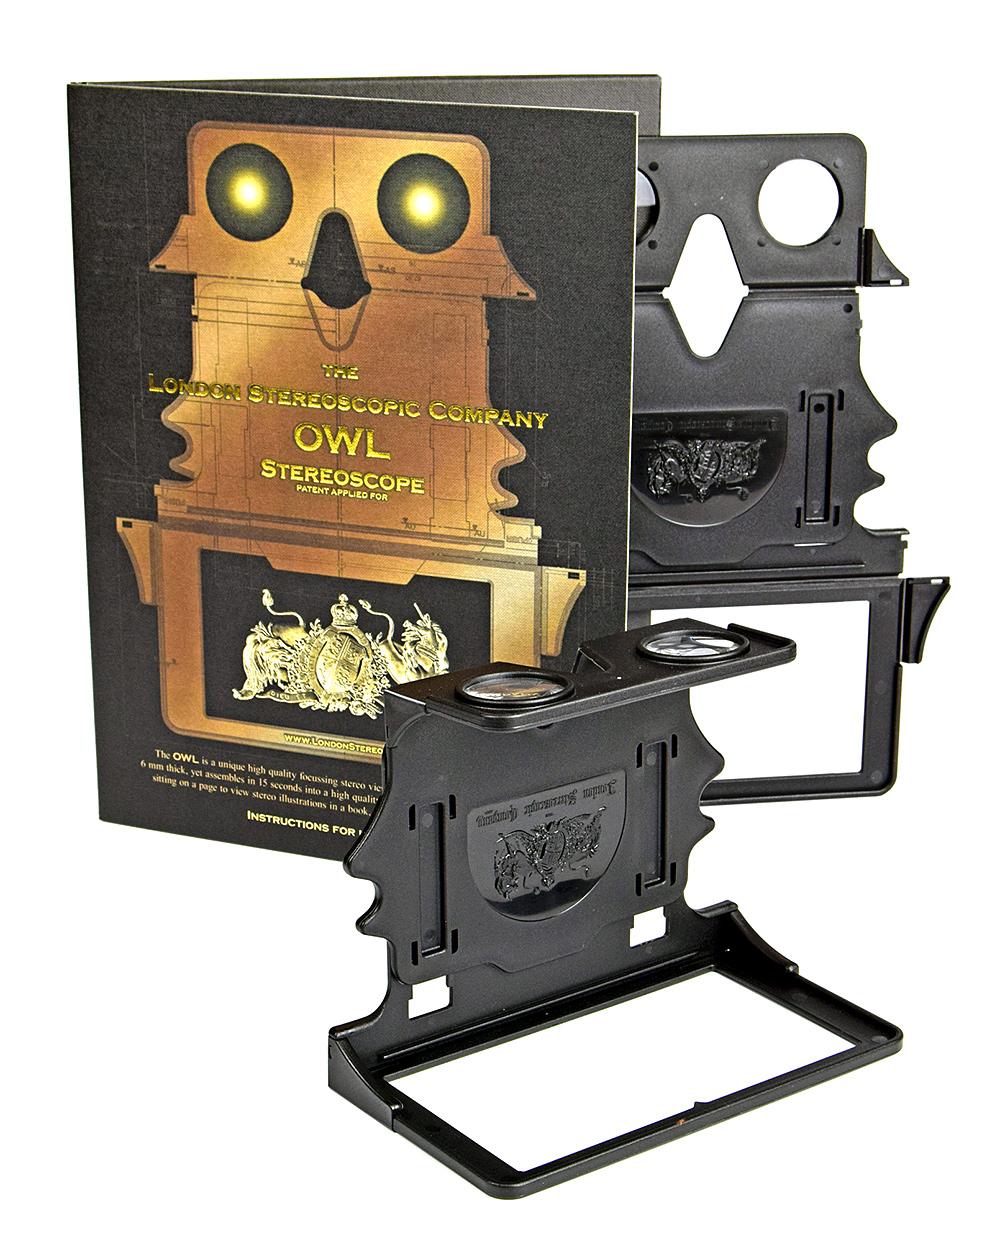 The OWL Stereoscopic Viewer